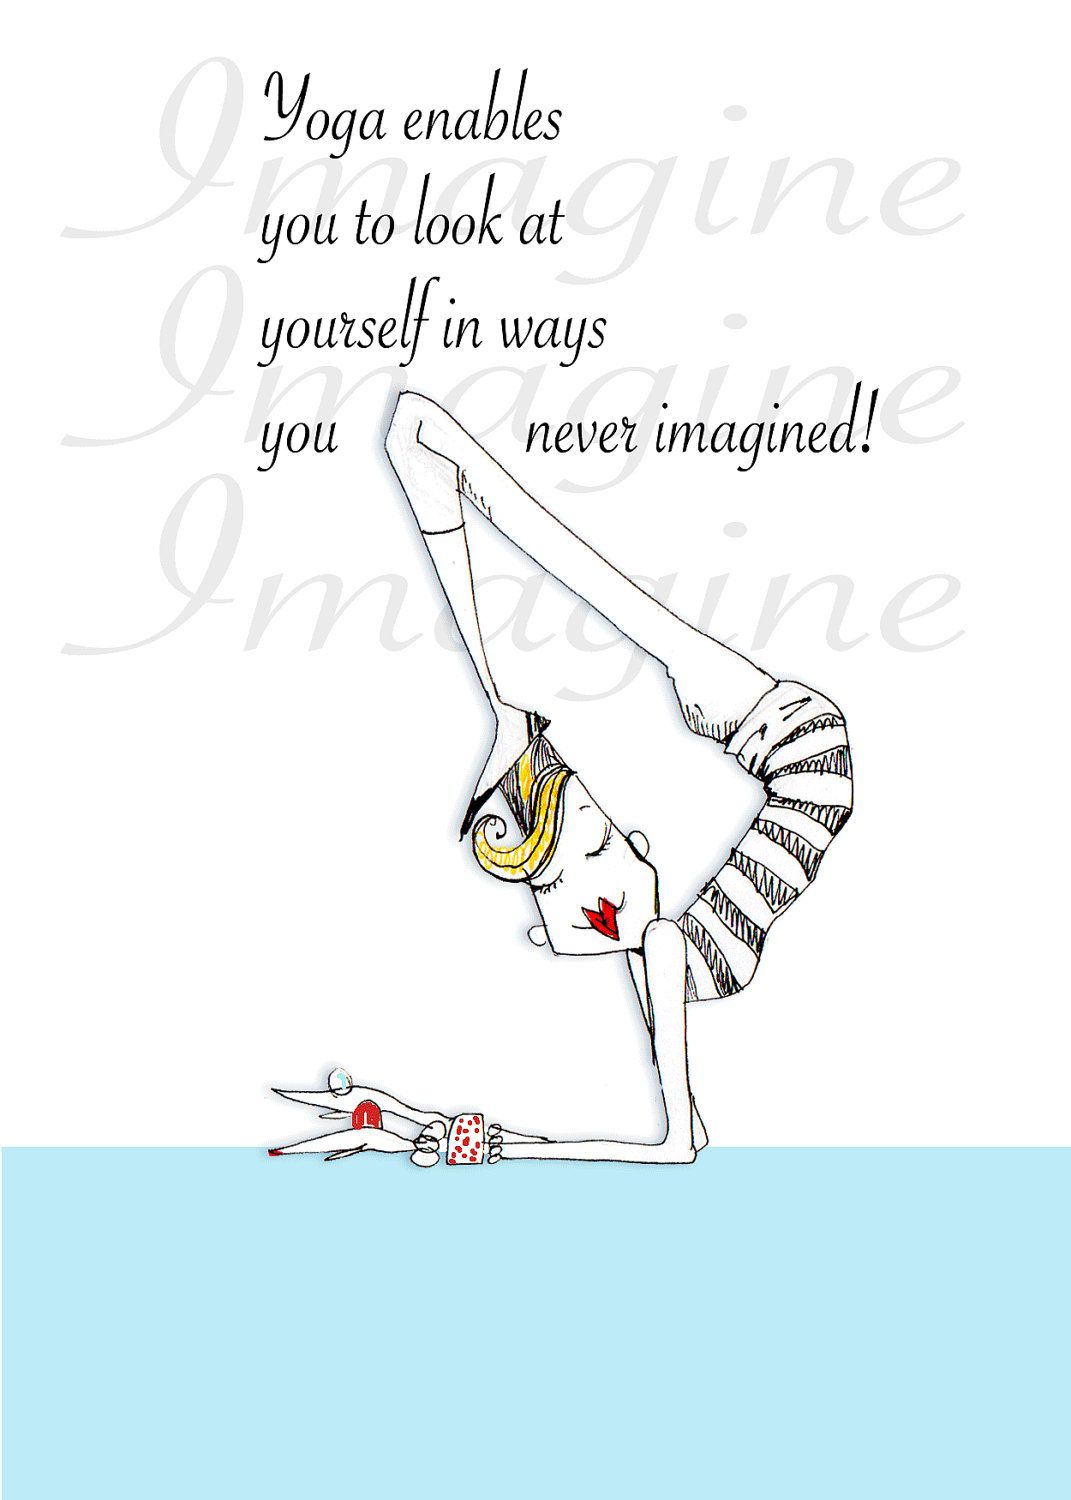 Funny Yoga Quotes Funny Yoga Quotes Yoga quote humor 5x7 print by | Yoga | Yoga  Funny Yoga Quotes